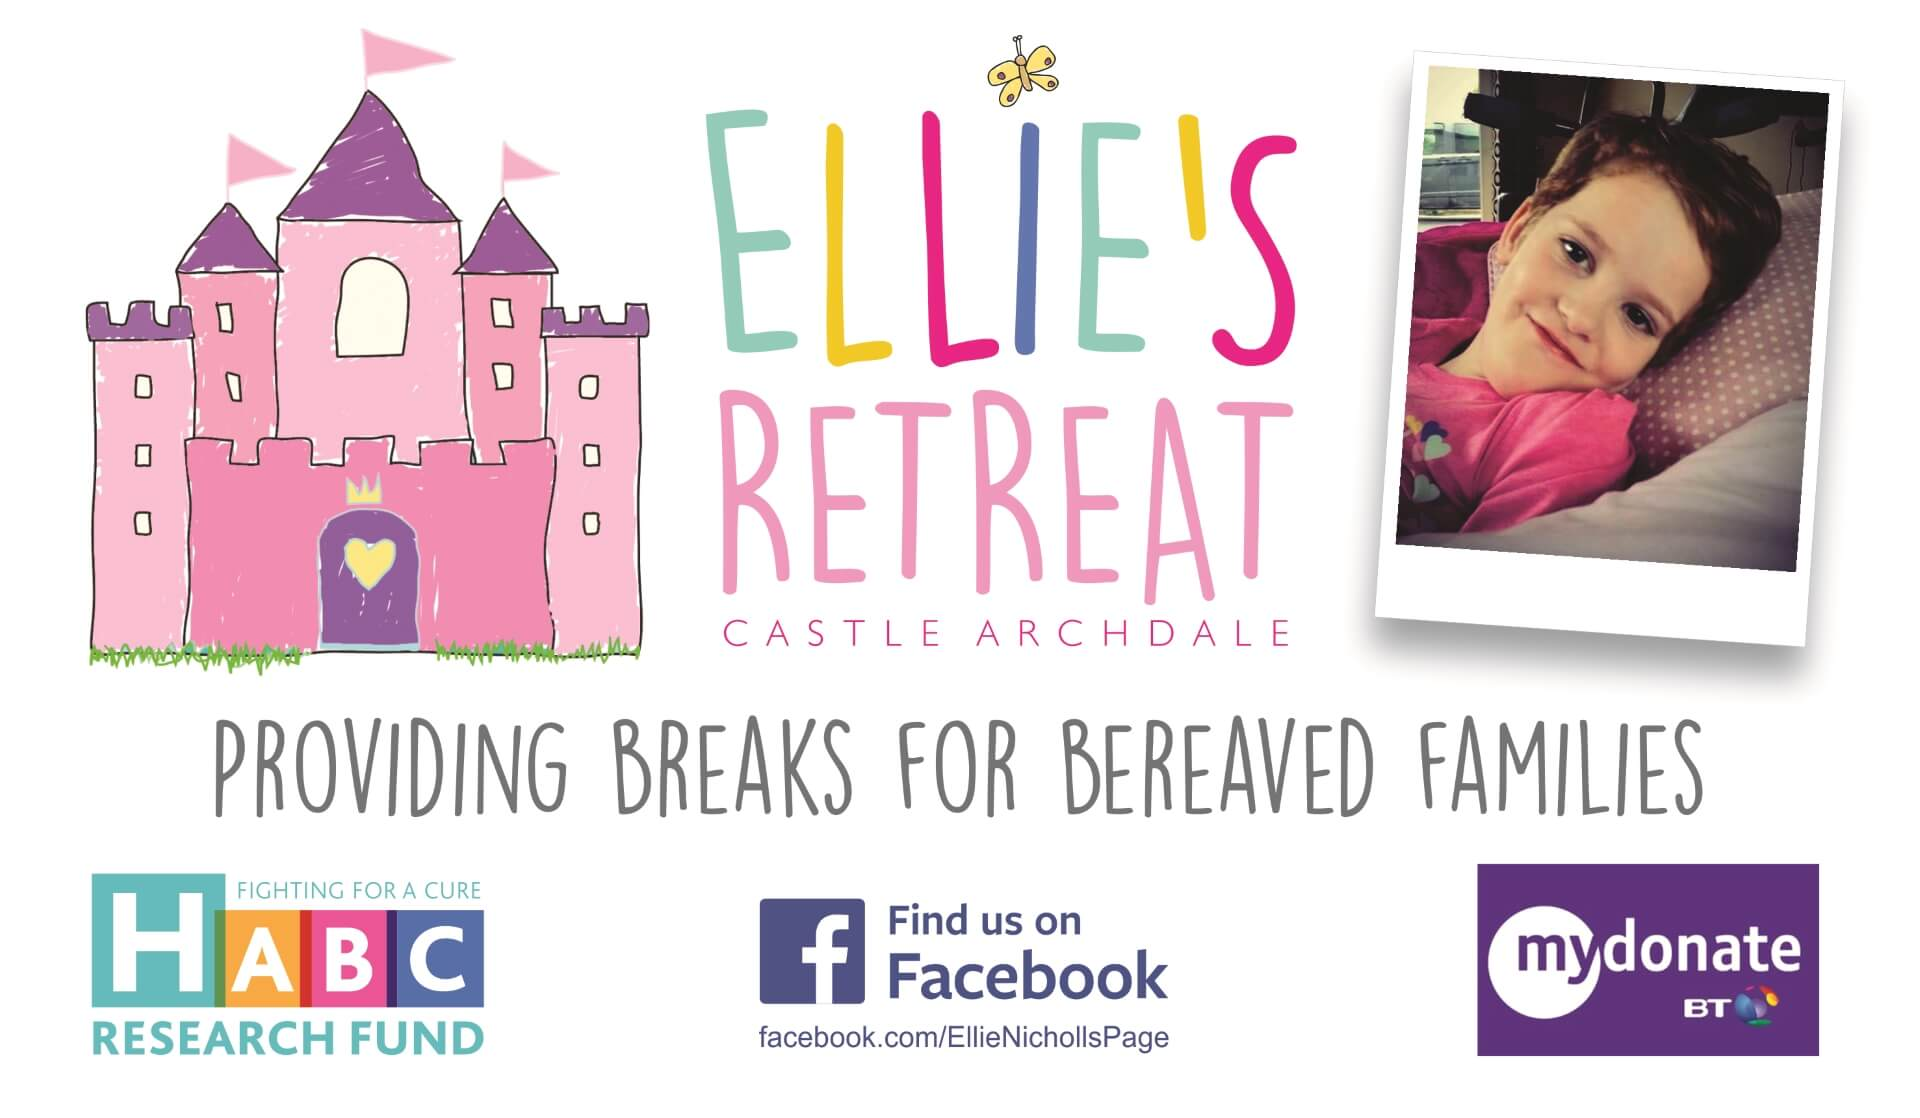 Balcas are proud to have Ellie's Retreat as our annual charity for 2017